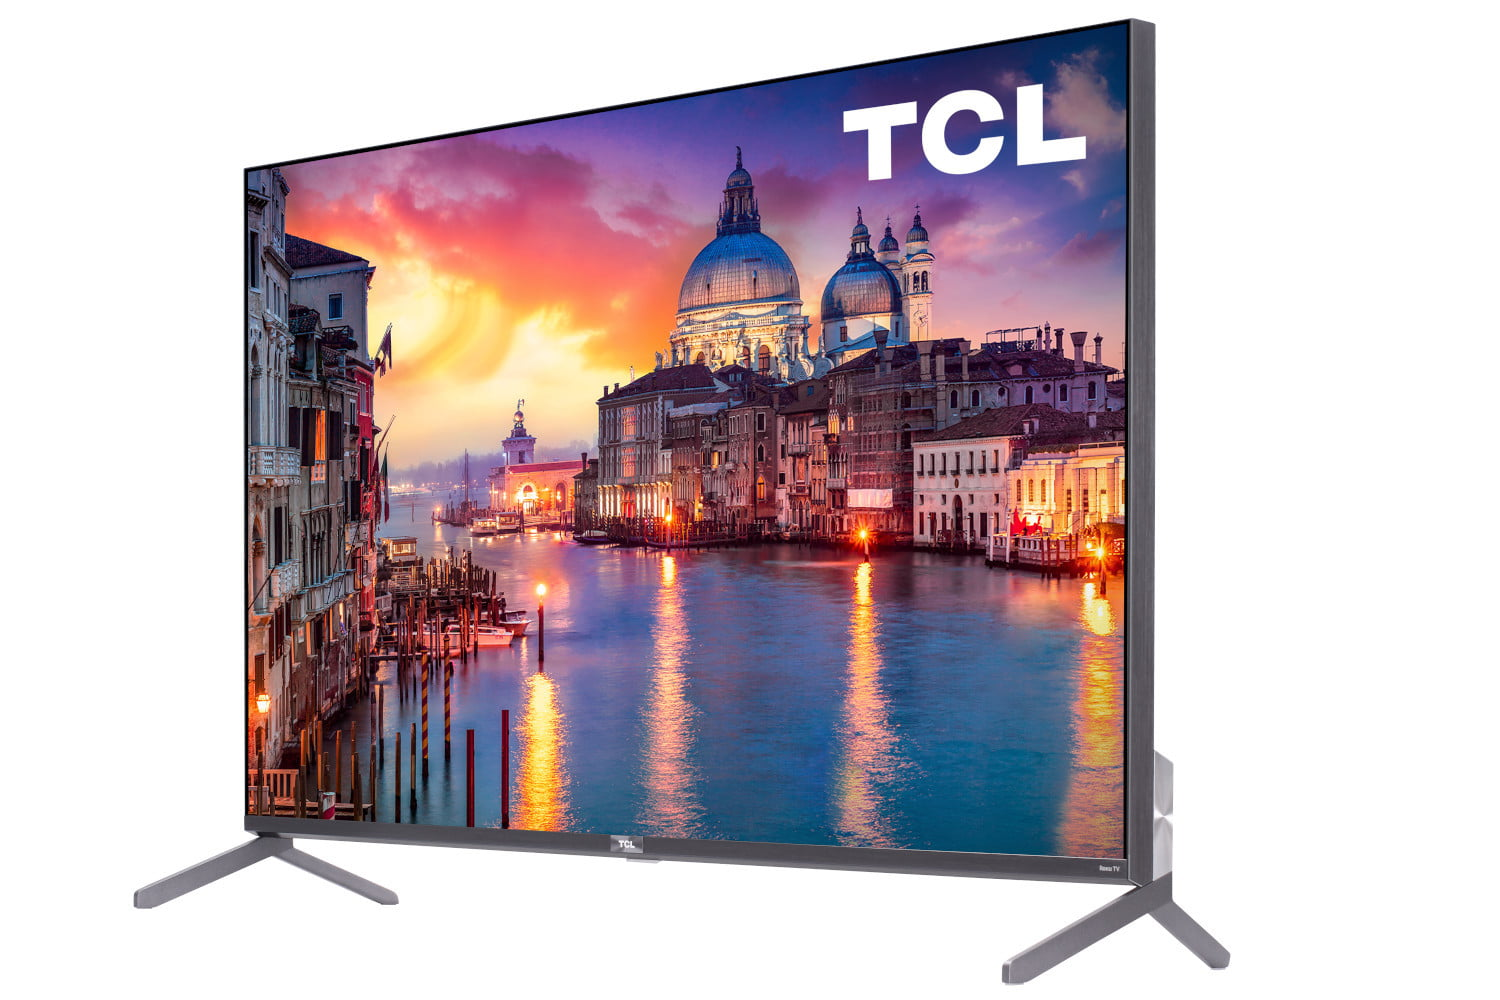 tcl 2019 8 series 6 5 released details pricing 55r625 angled right hero